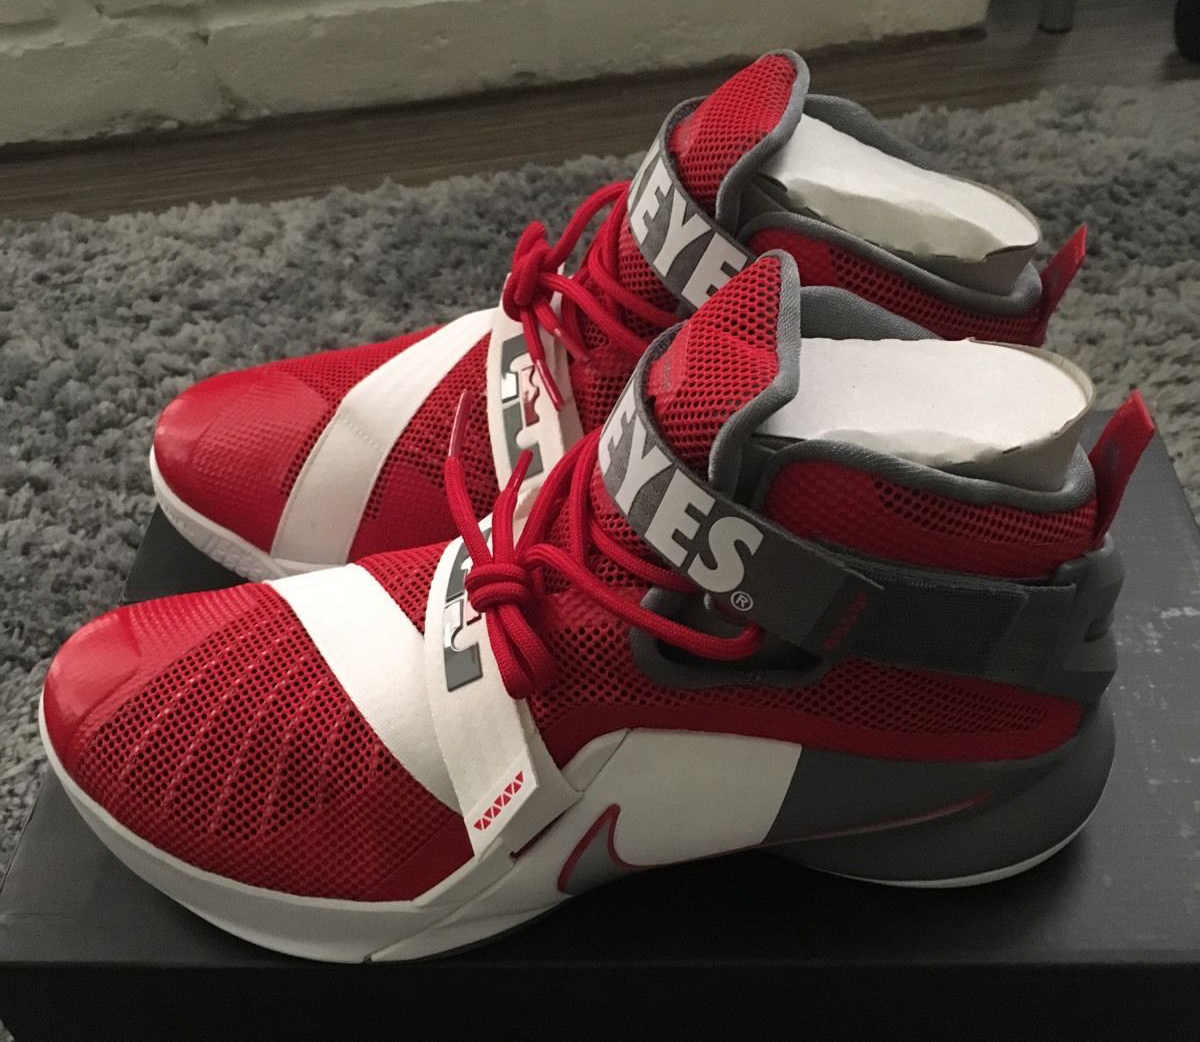 new concept 3c45b e6649 The Buckeyes Get Their Own LeBron Zoom Soldier 9 ...